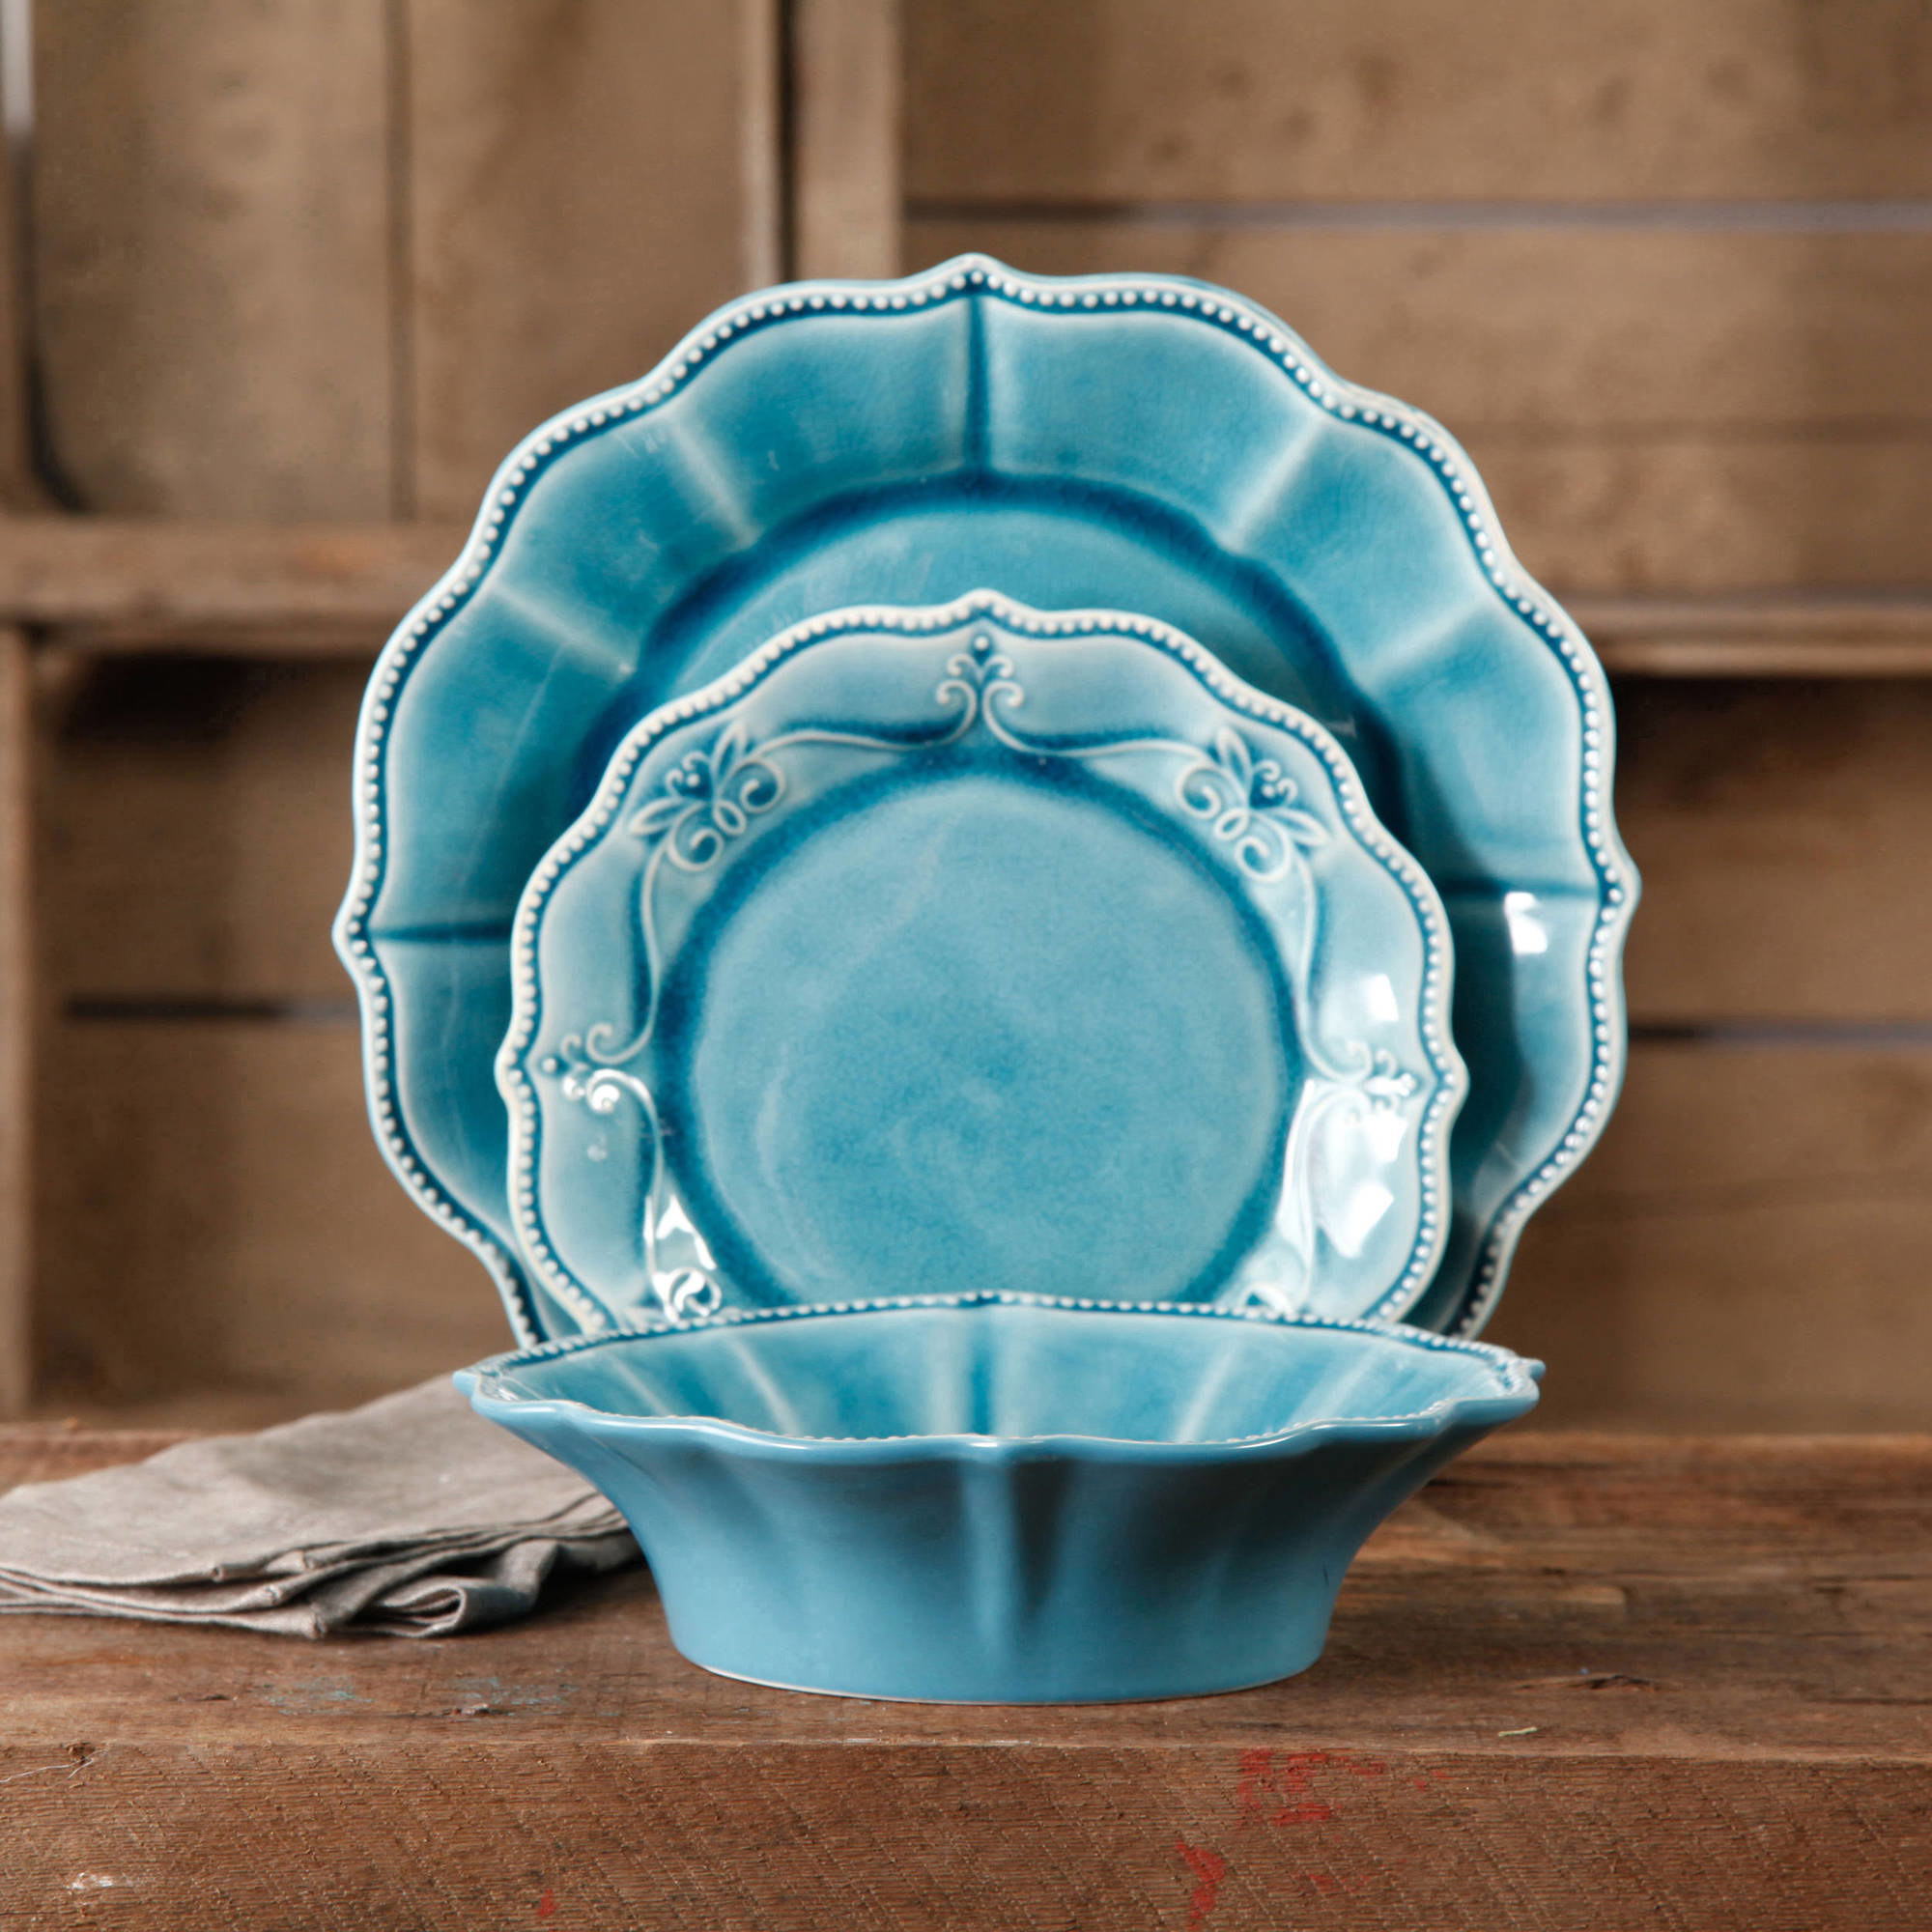 The blue dish set with scalloped edges